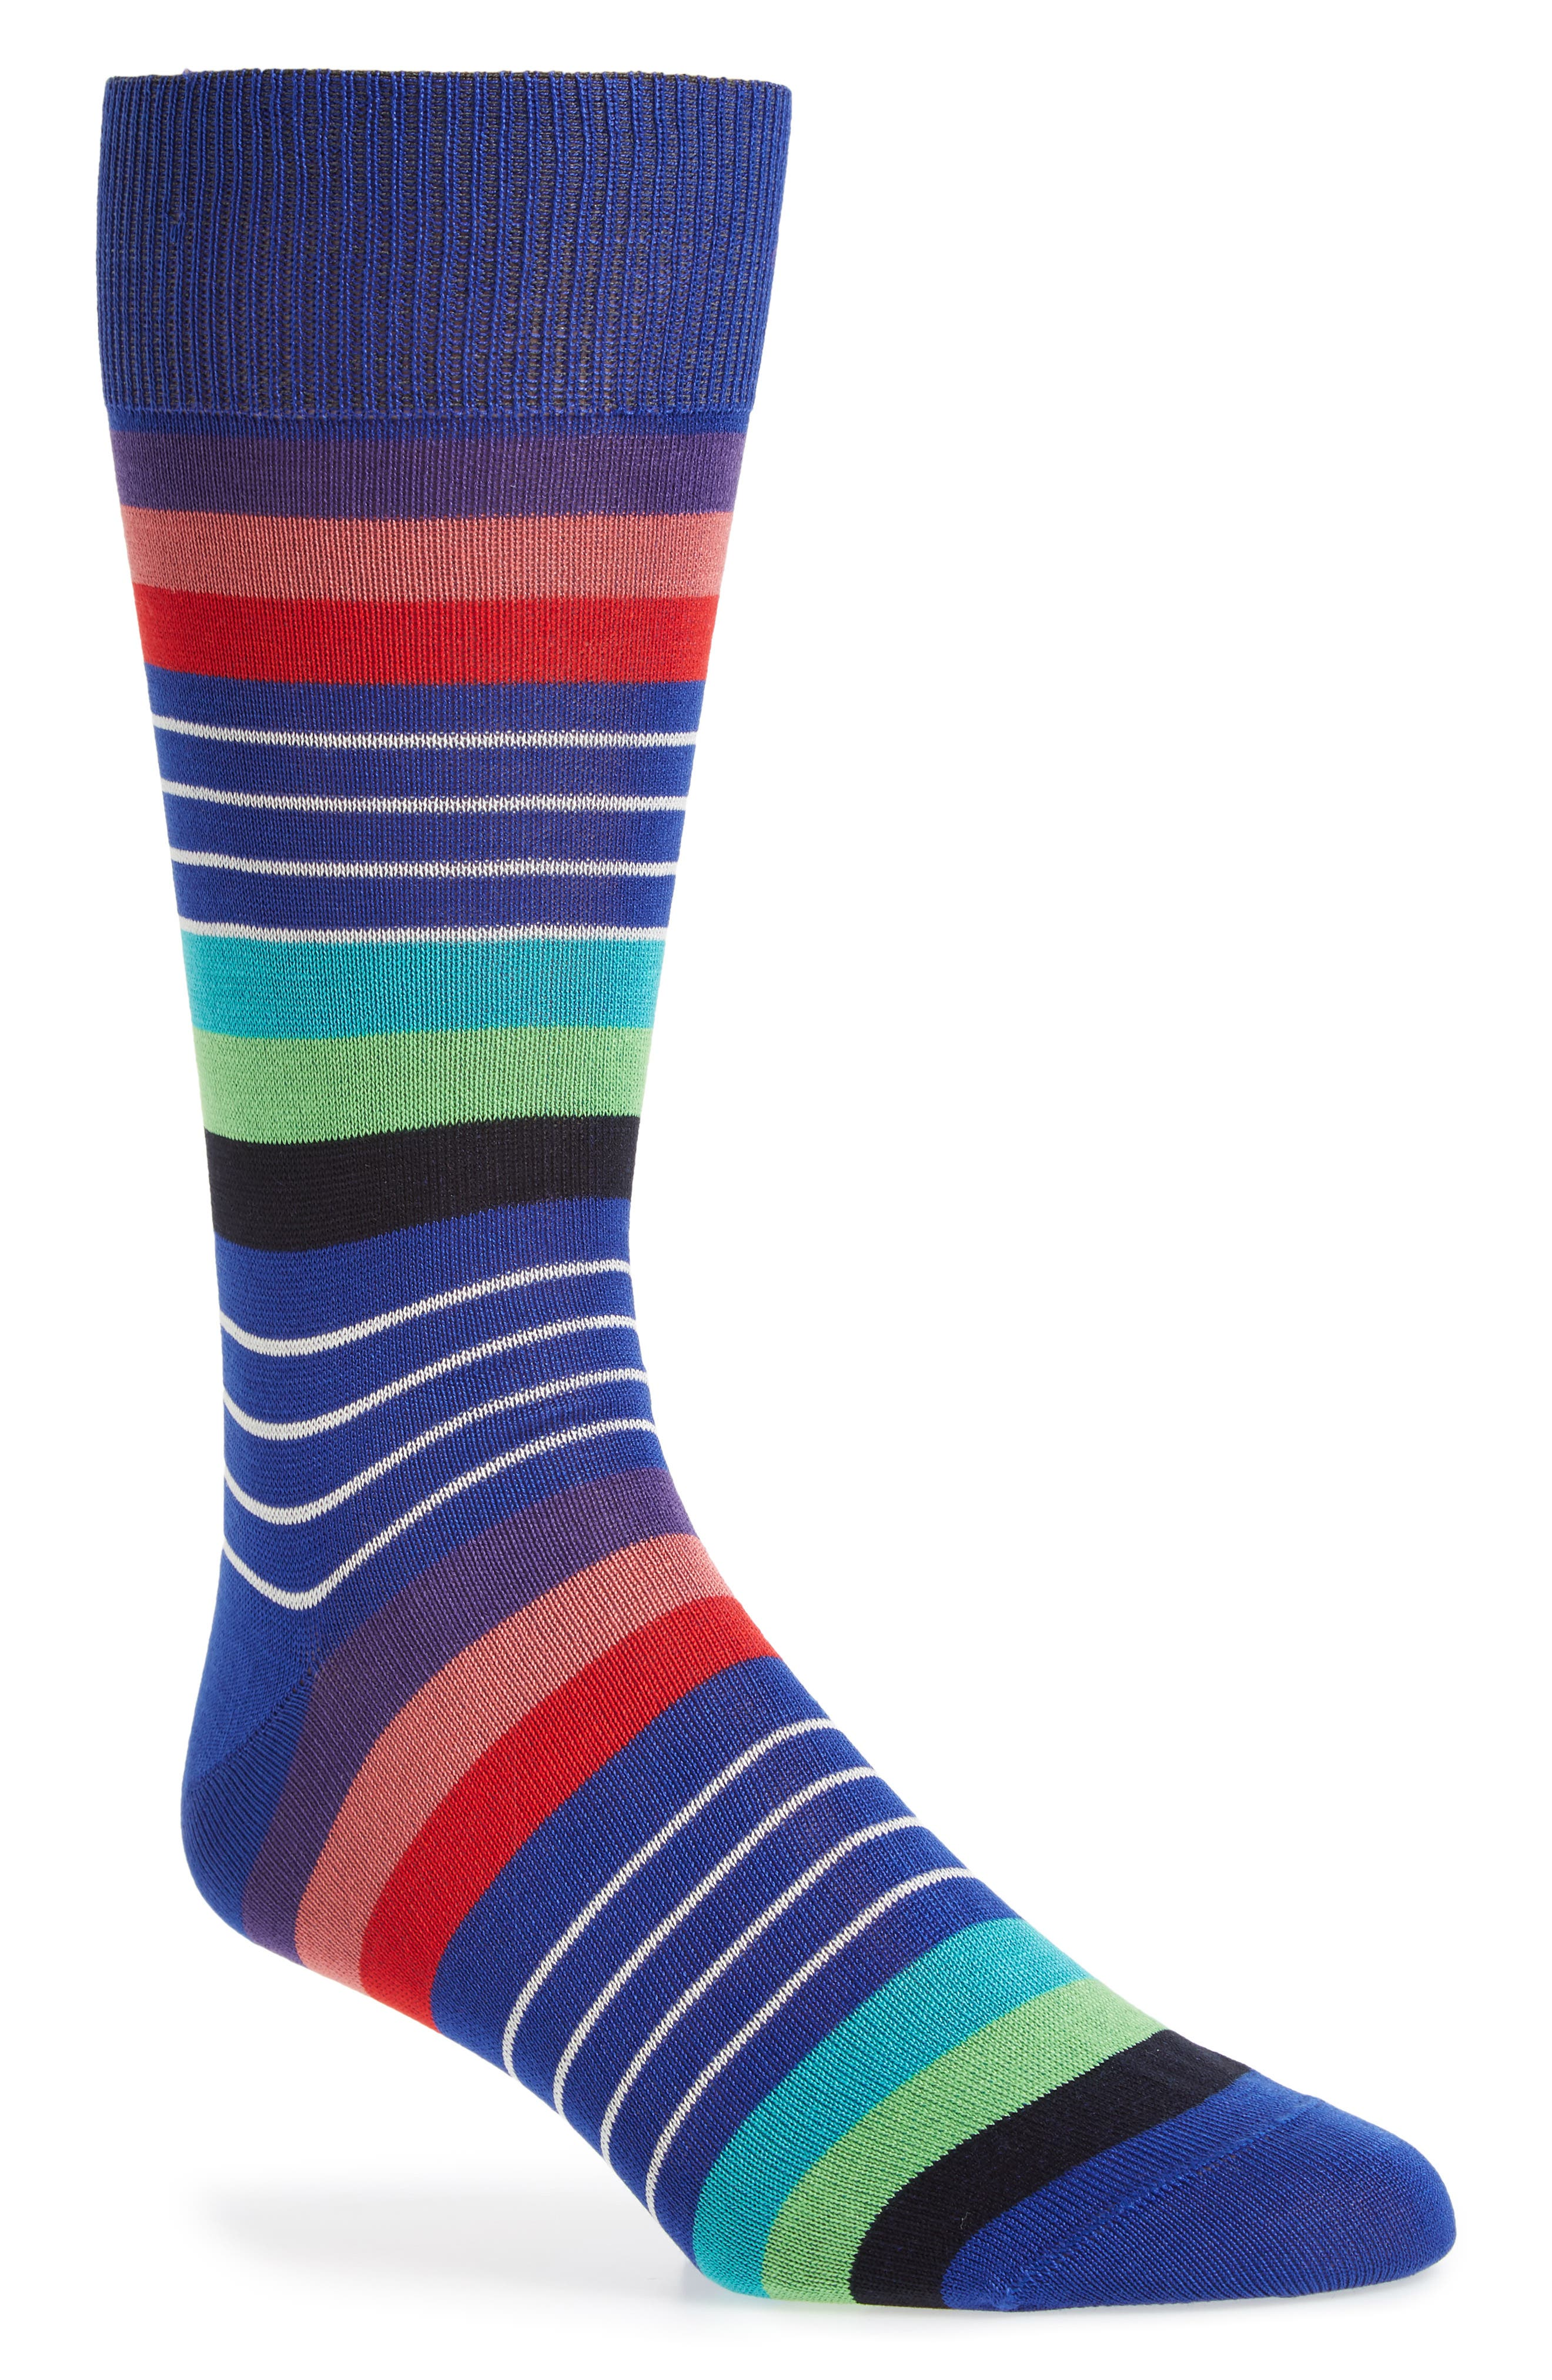 Kel Stripe Crew Socks,                         Main,                         color,